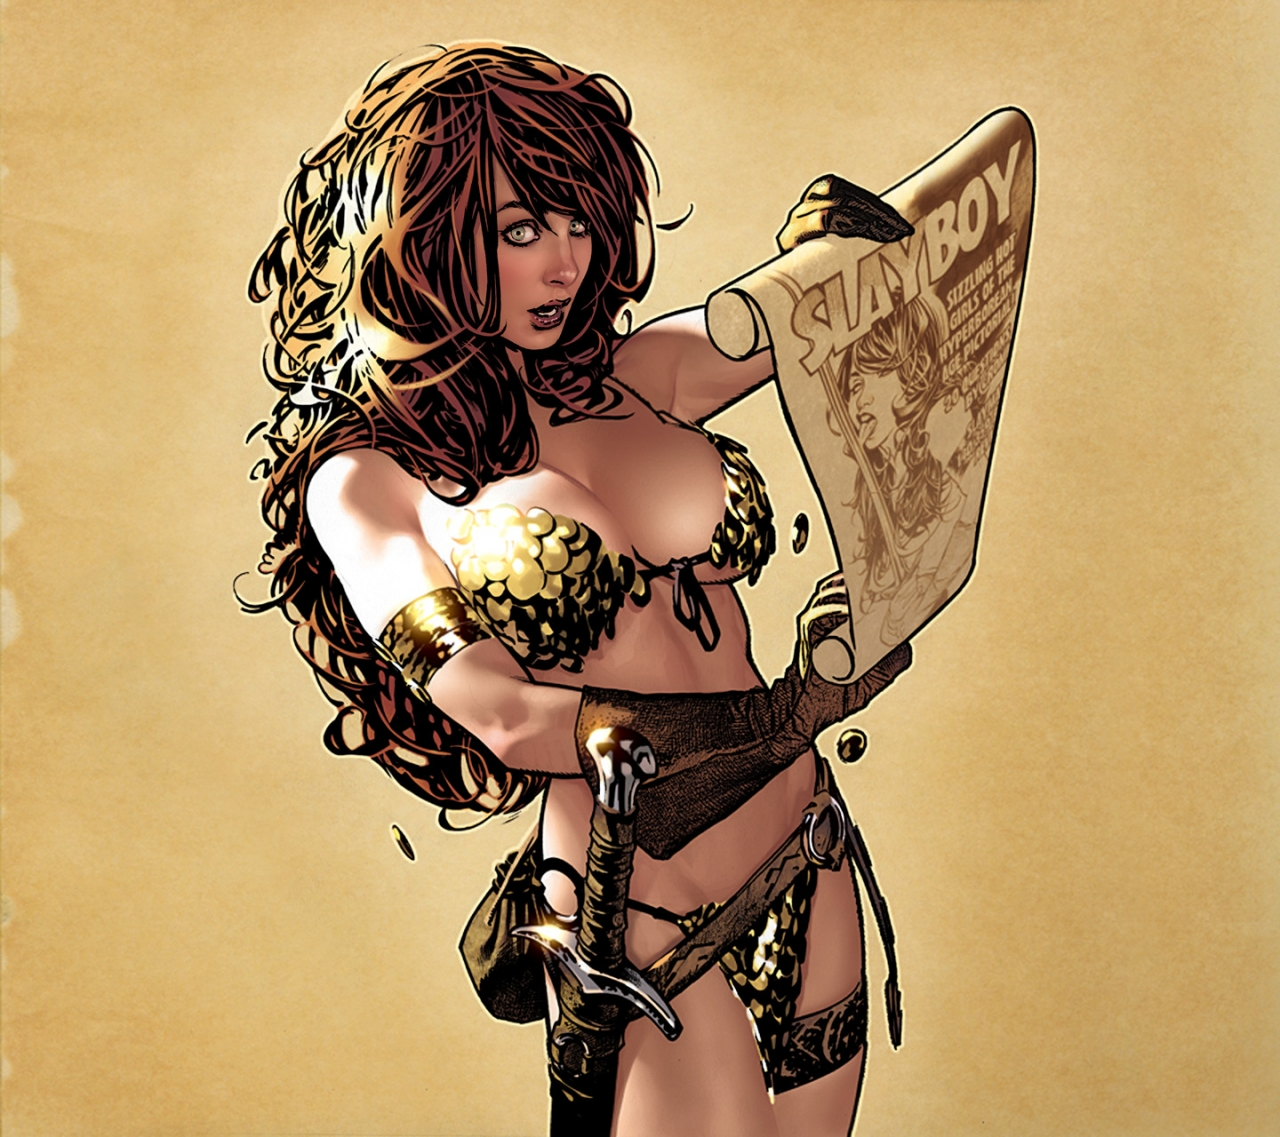 Red Sonja by Adam Hughes